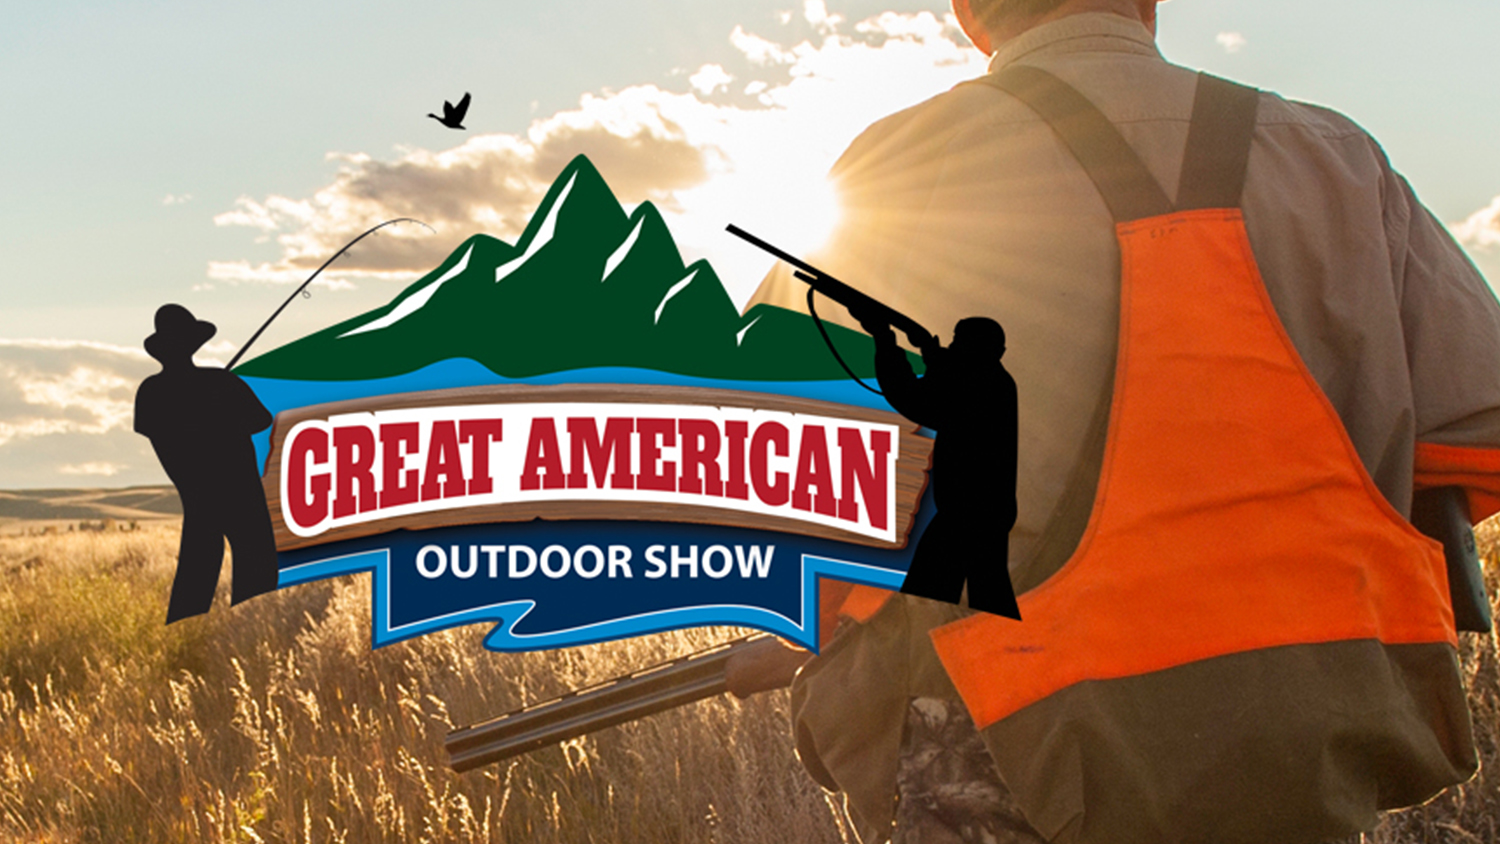 Great American Outdoor Show Events: Tuesday, February 9th